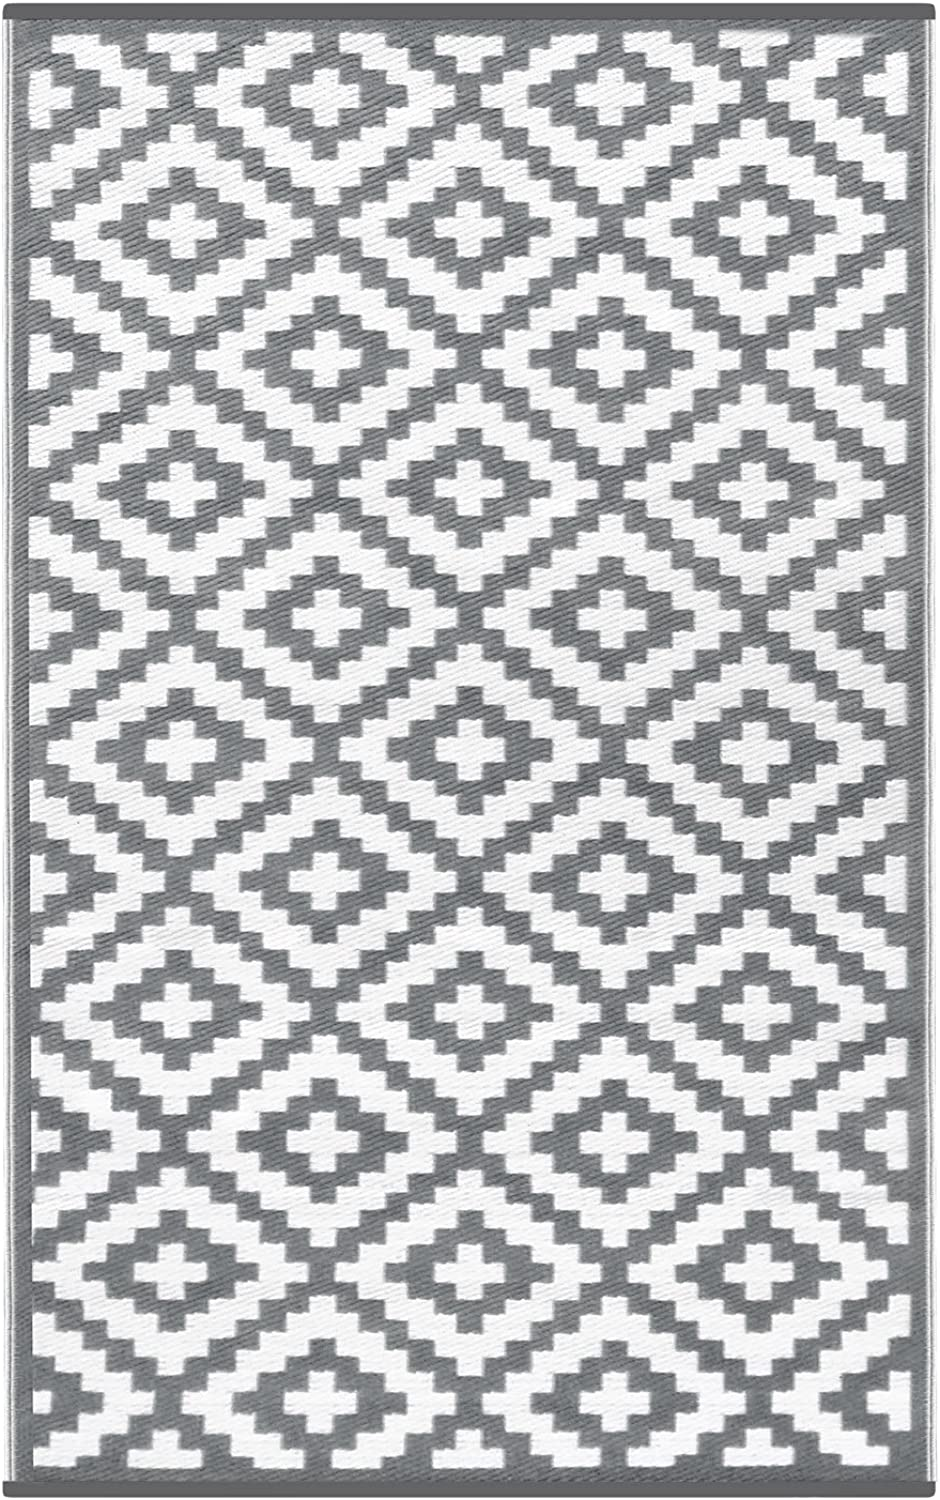 GD Home Lightweight Indoor Outdoor Reversible Plastic Rug - 120 x 180 cm Grey White